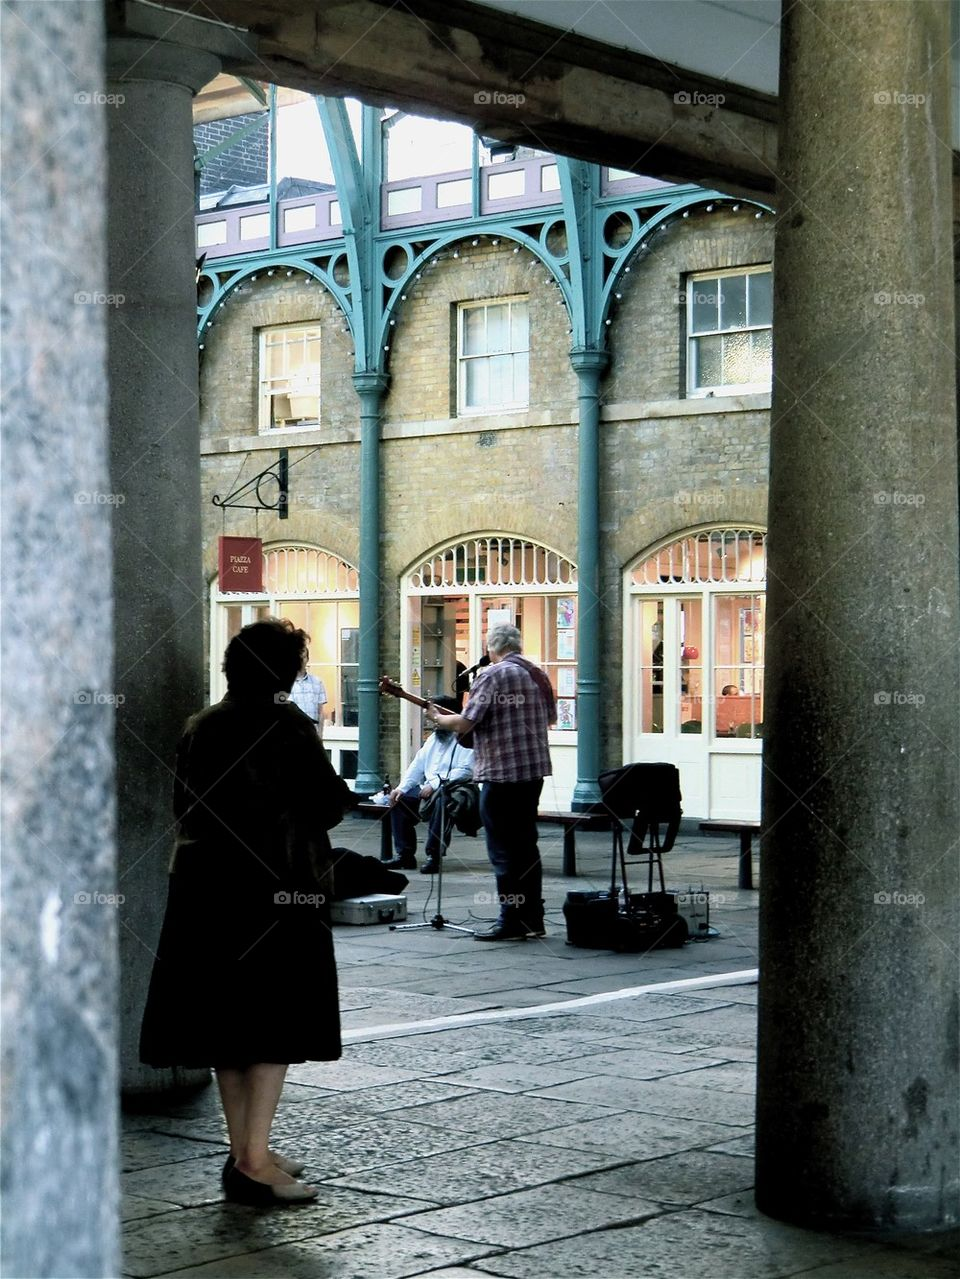 Musician at Covent Garden